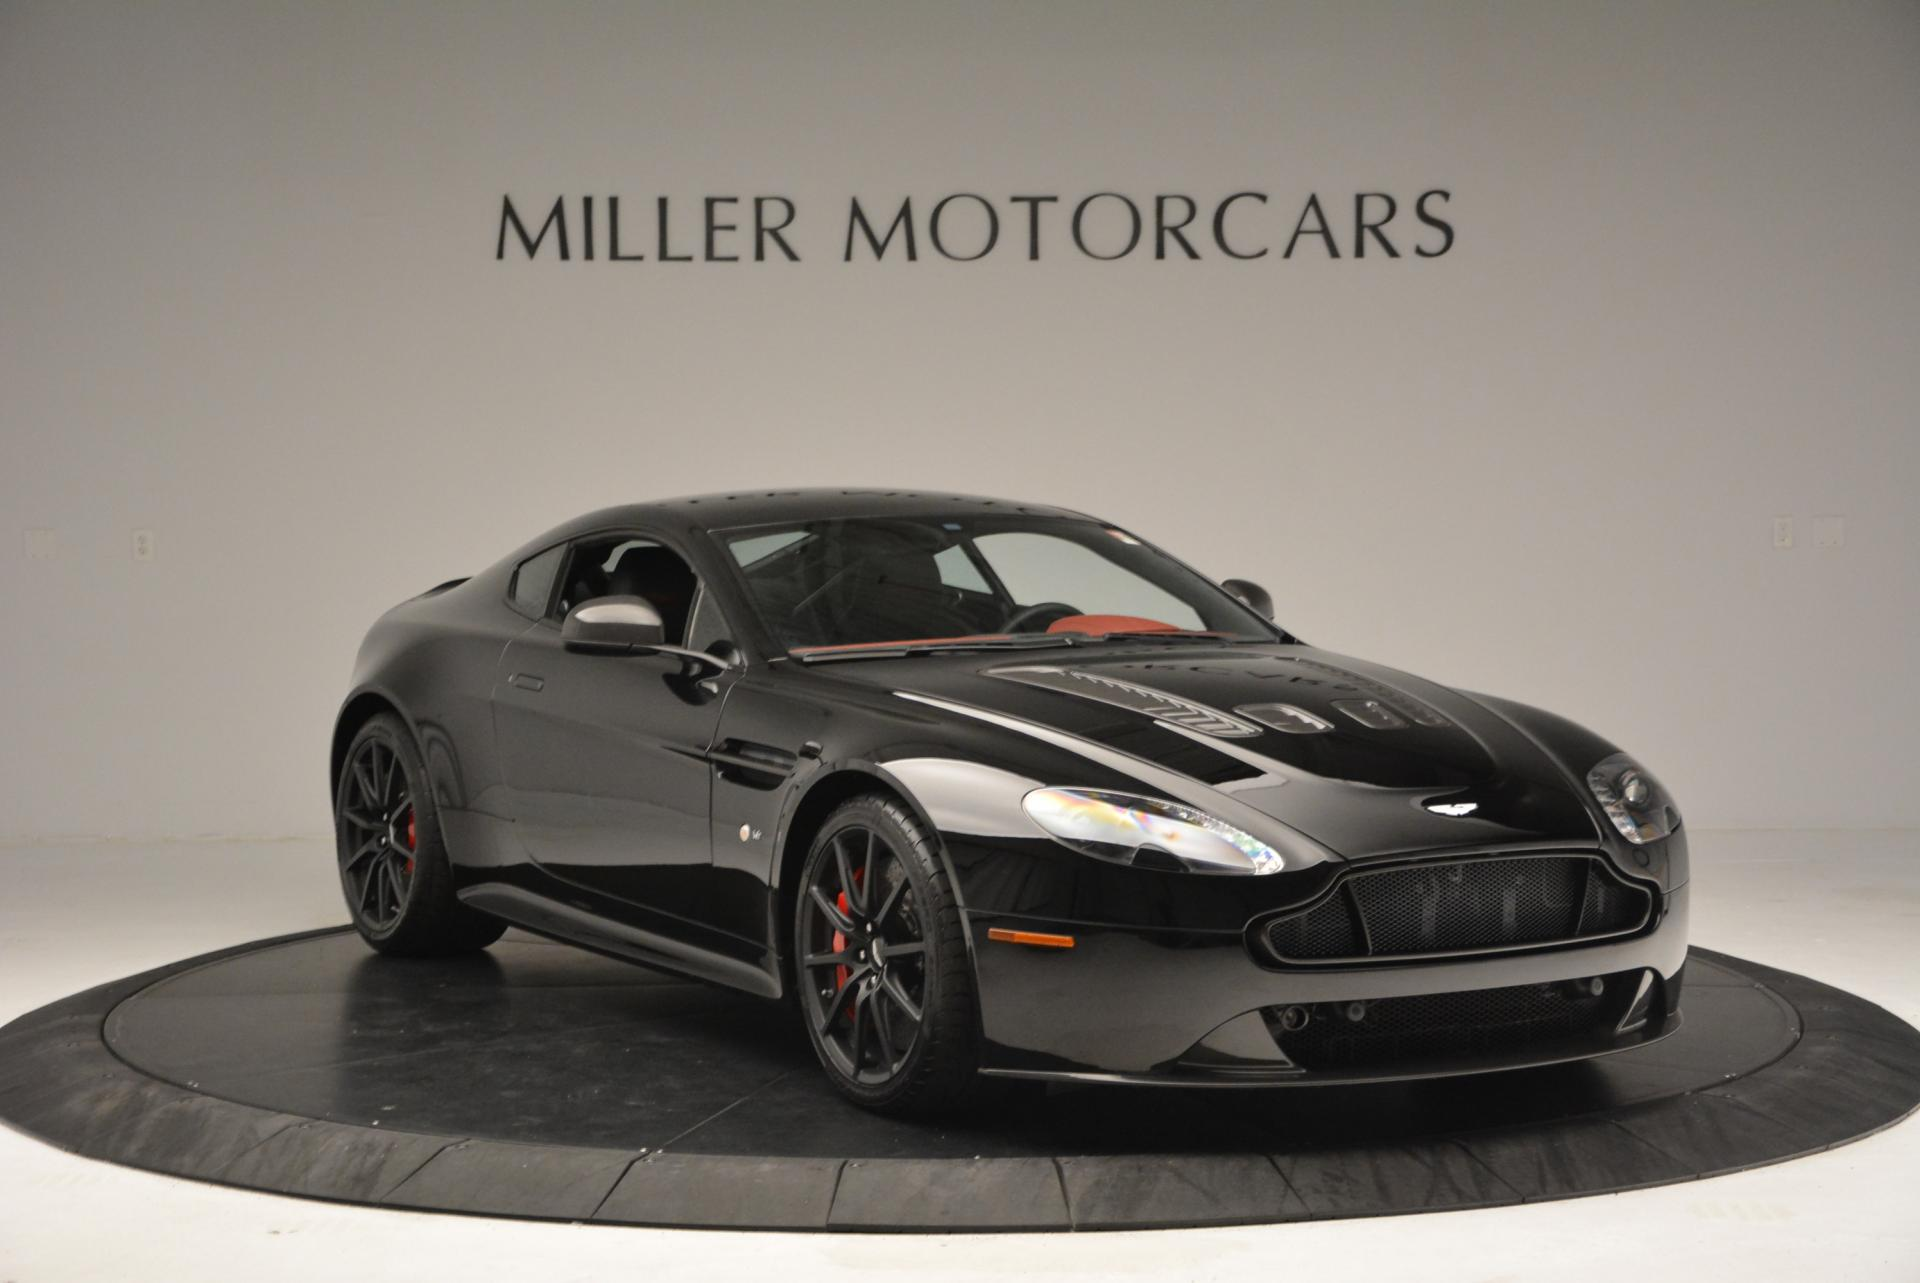 New 2015 Aston Martin V12 Vantage S  For Sale In Westport, CT 103_p11